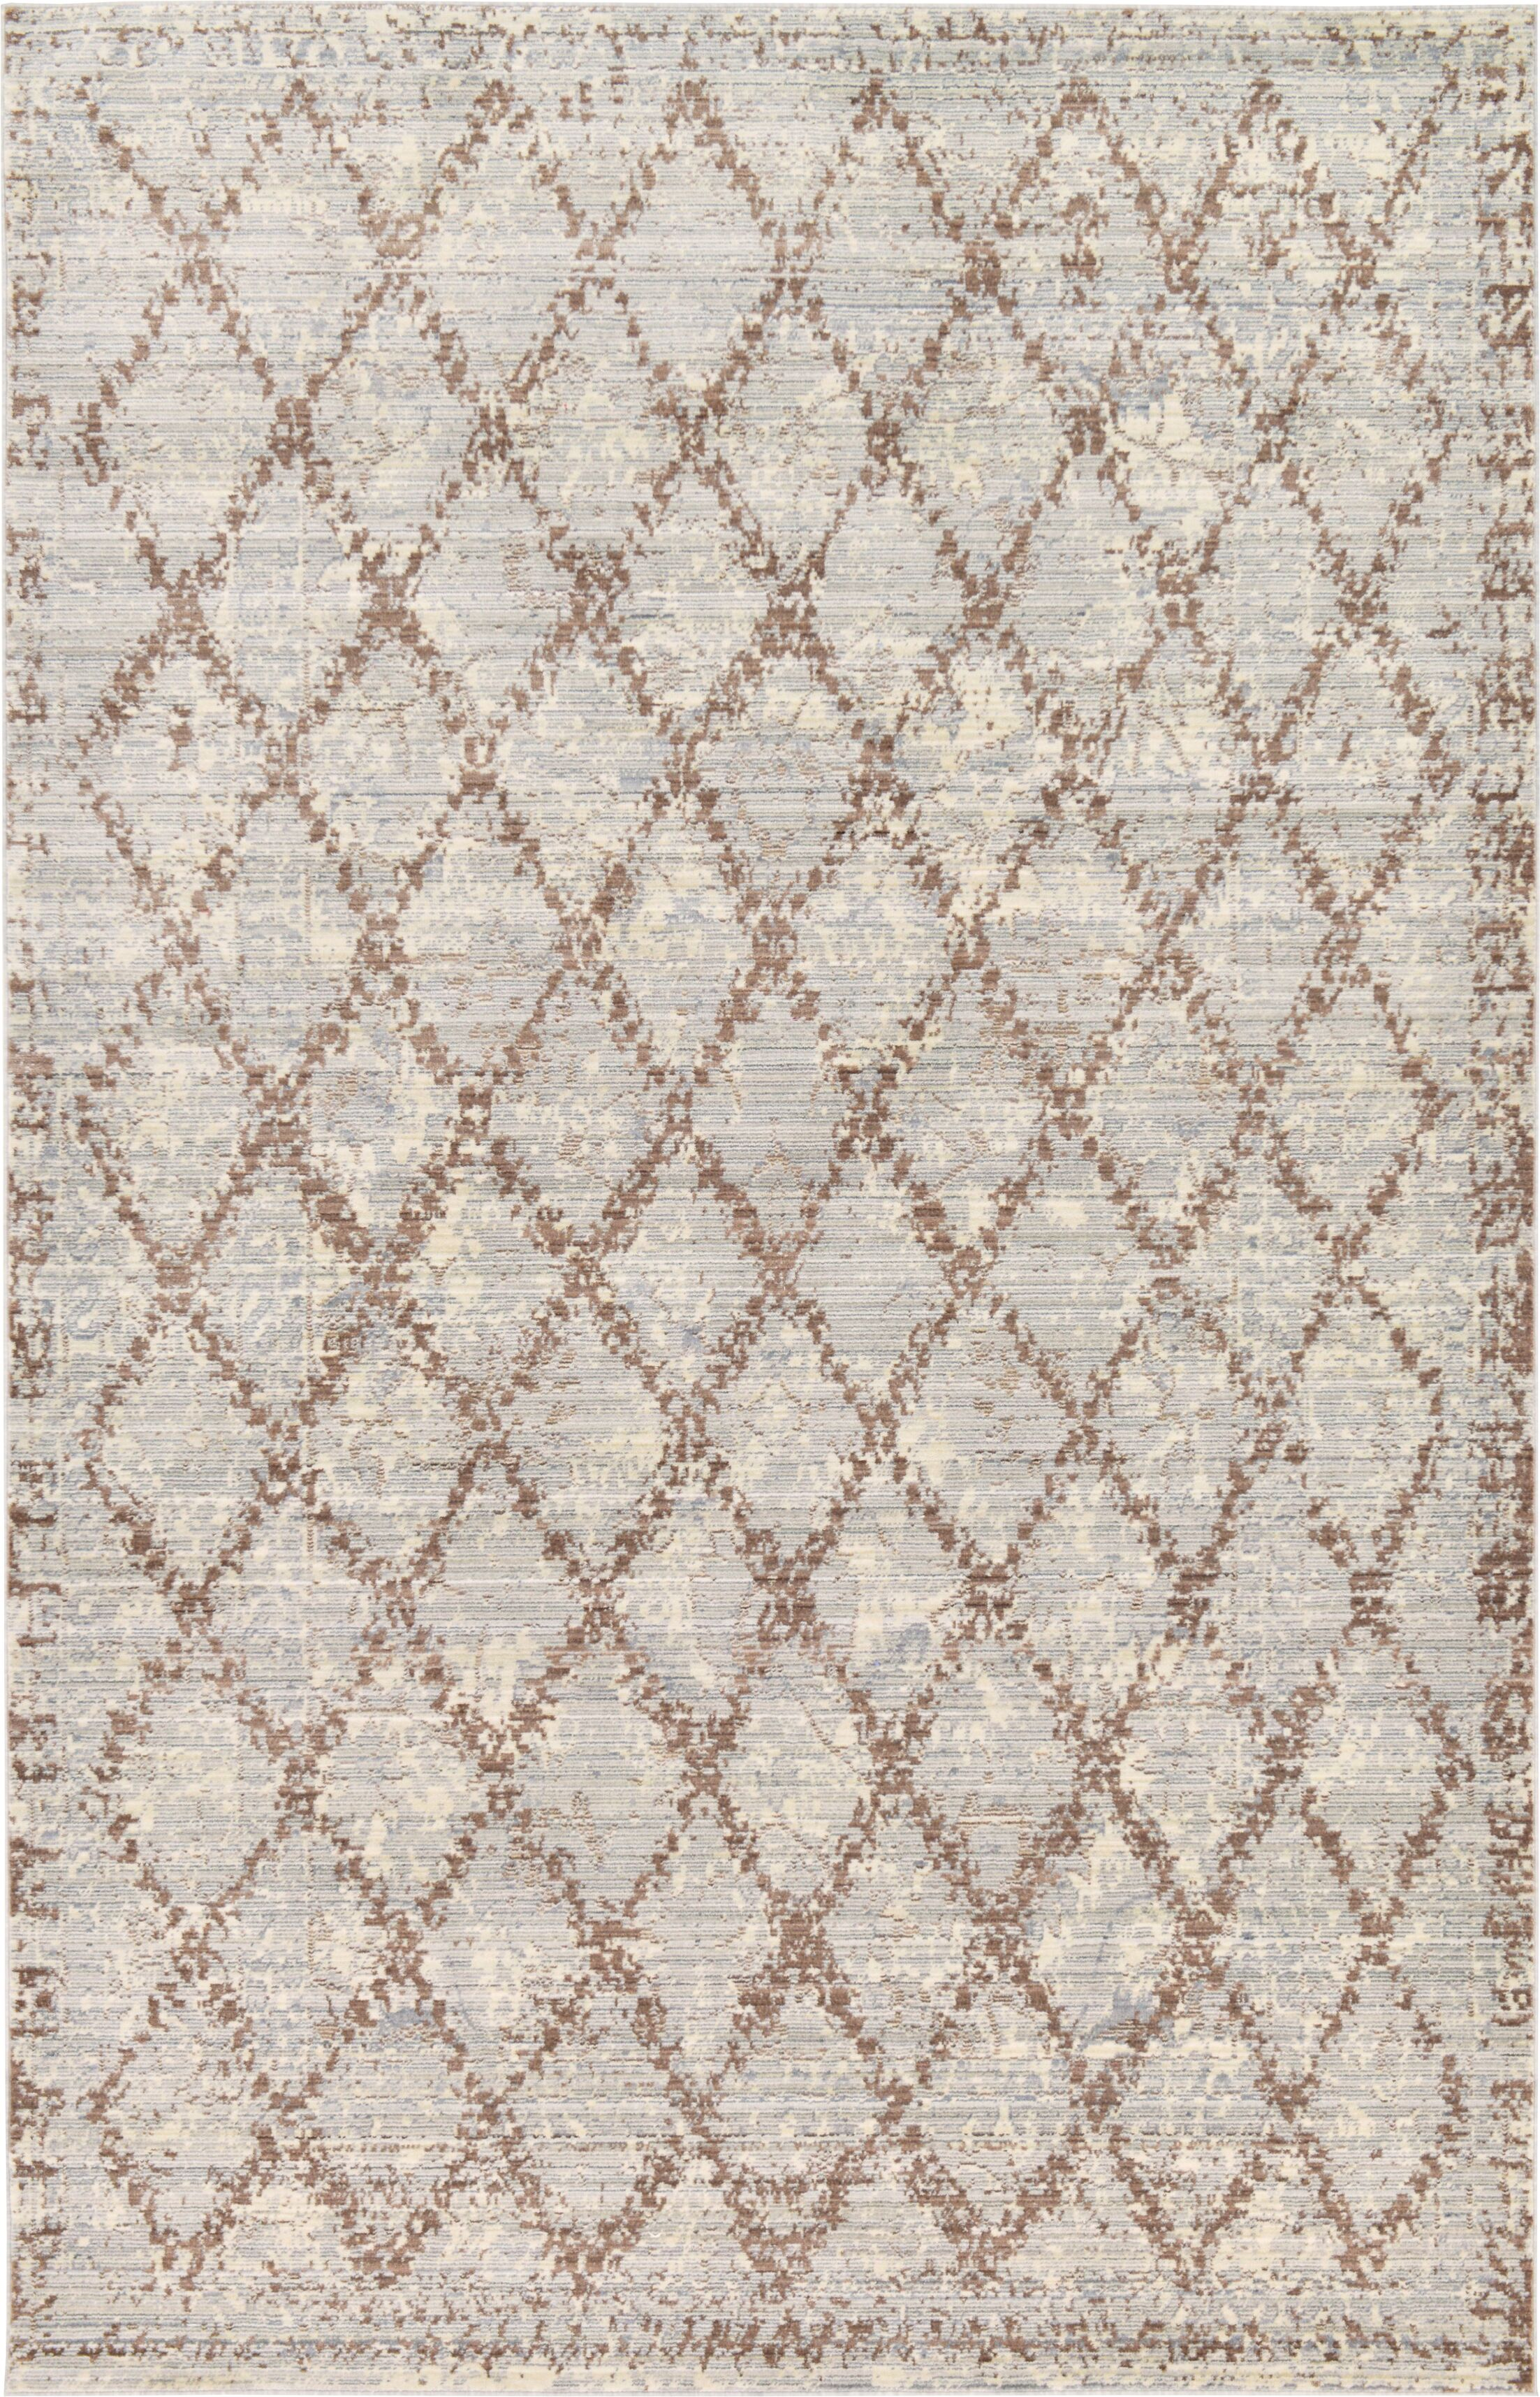 Karlee Gray Area Rug Rug Size: Rectangle 5' x 8'